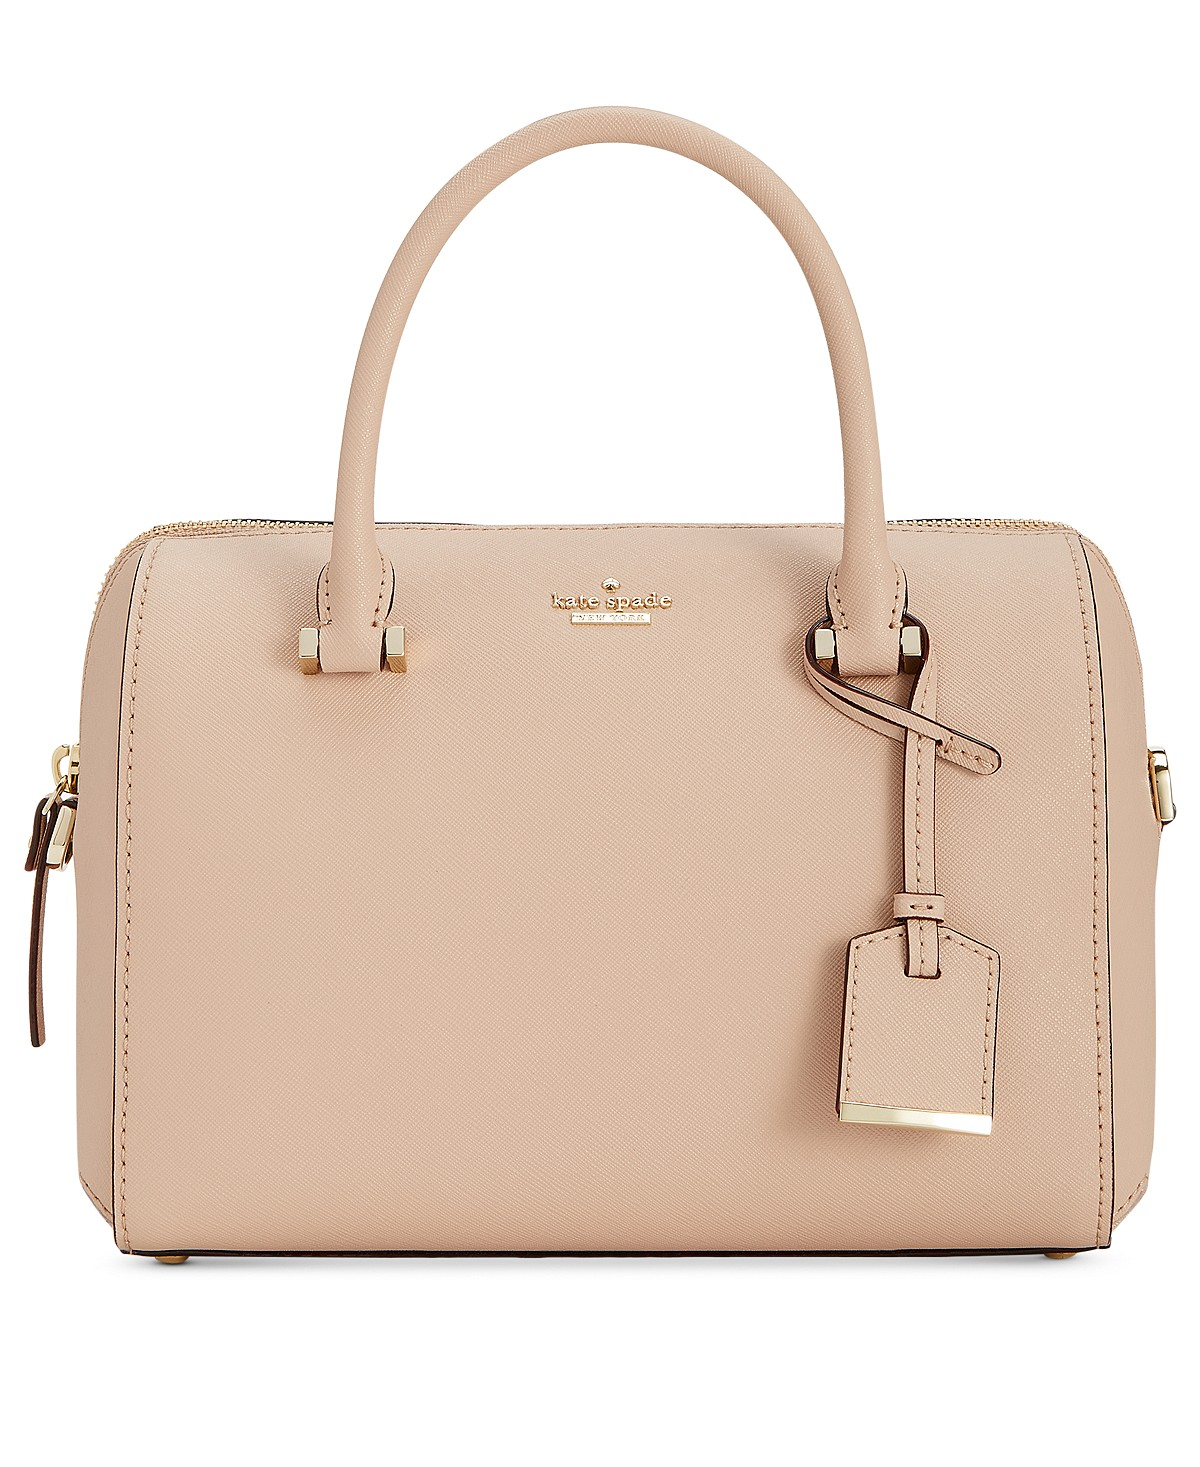 kate spade new york 'Cameron Street' Small Lane Satchel